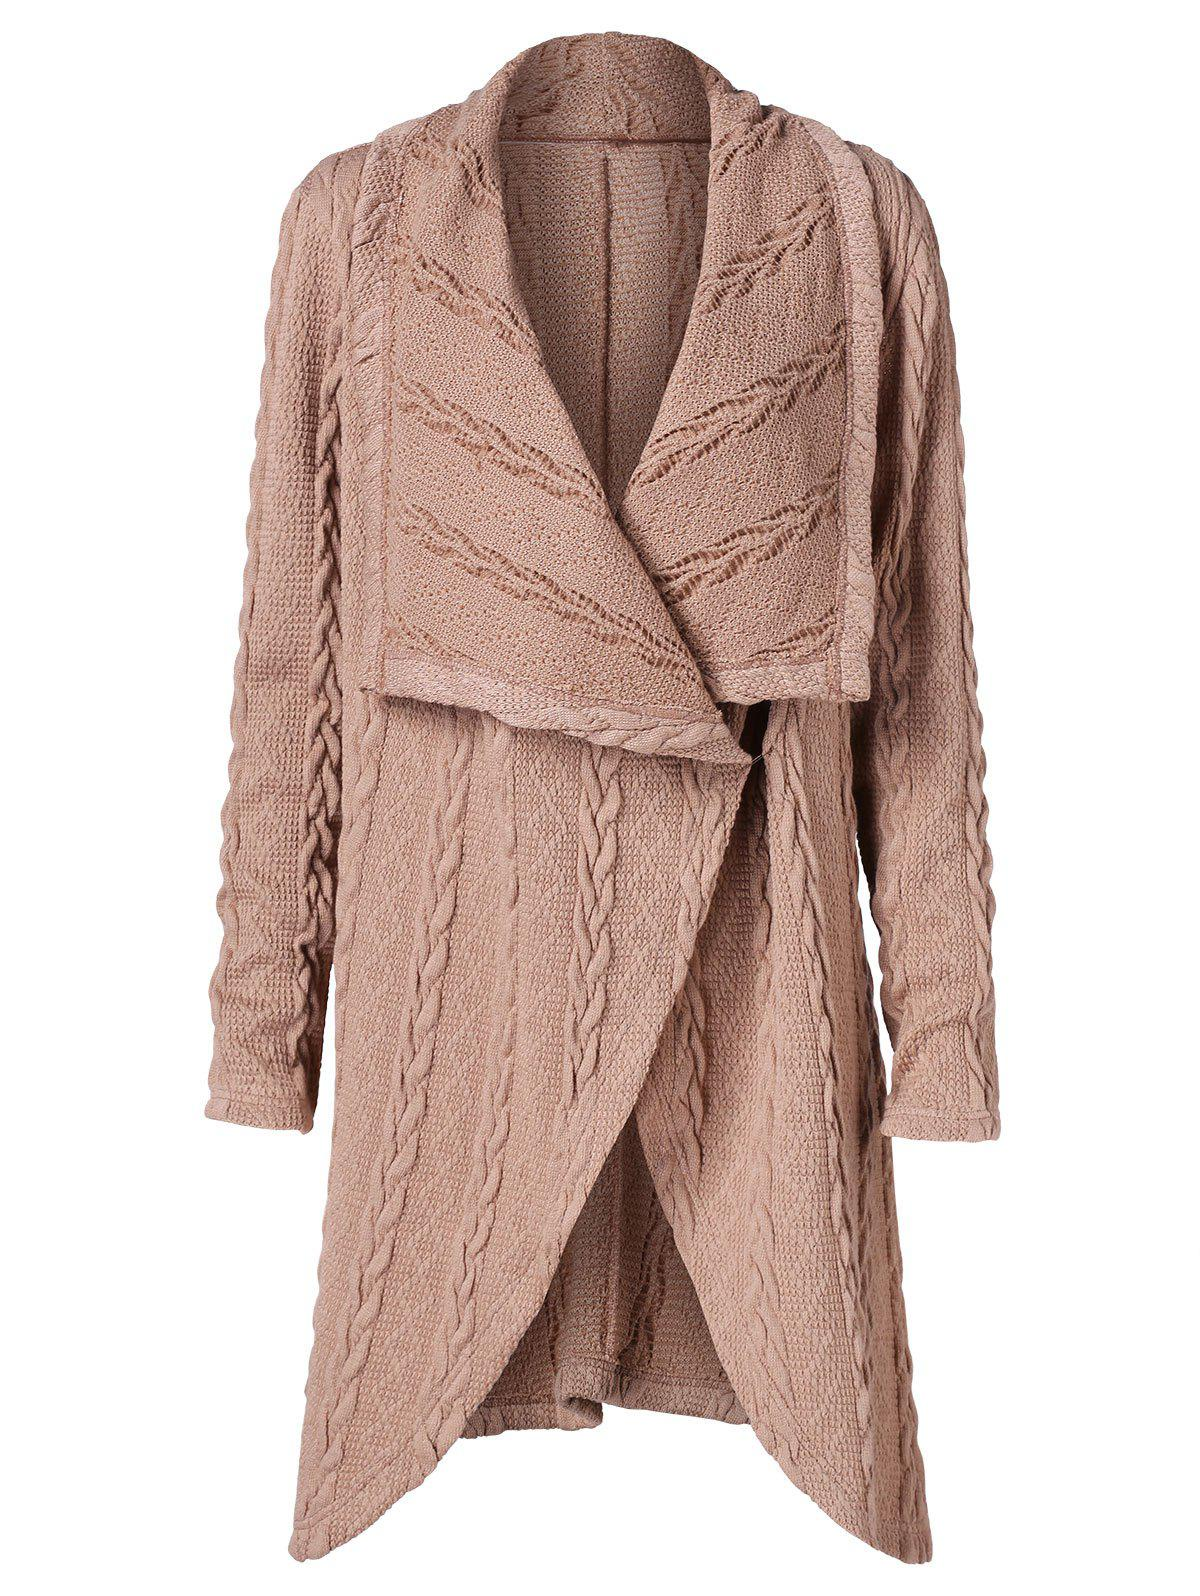 Draped Collar Long Cable Knit Cardigan - CAMEL BROWN M